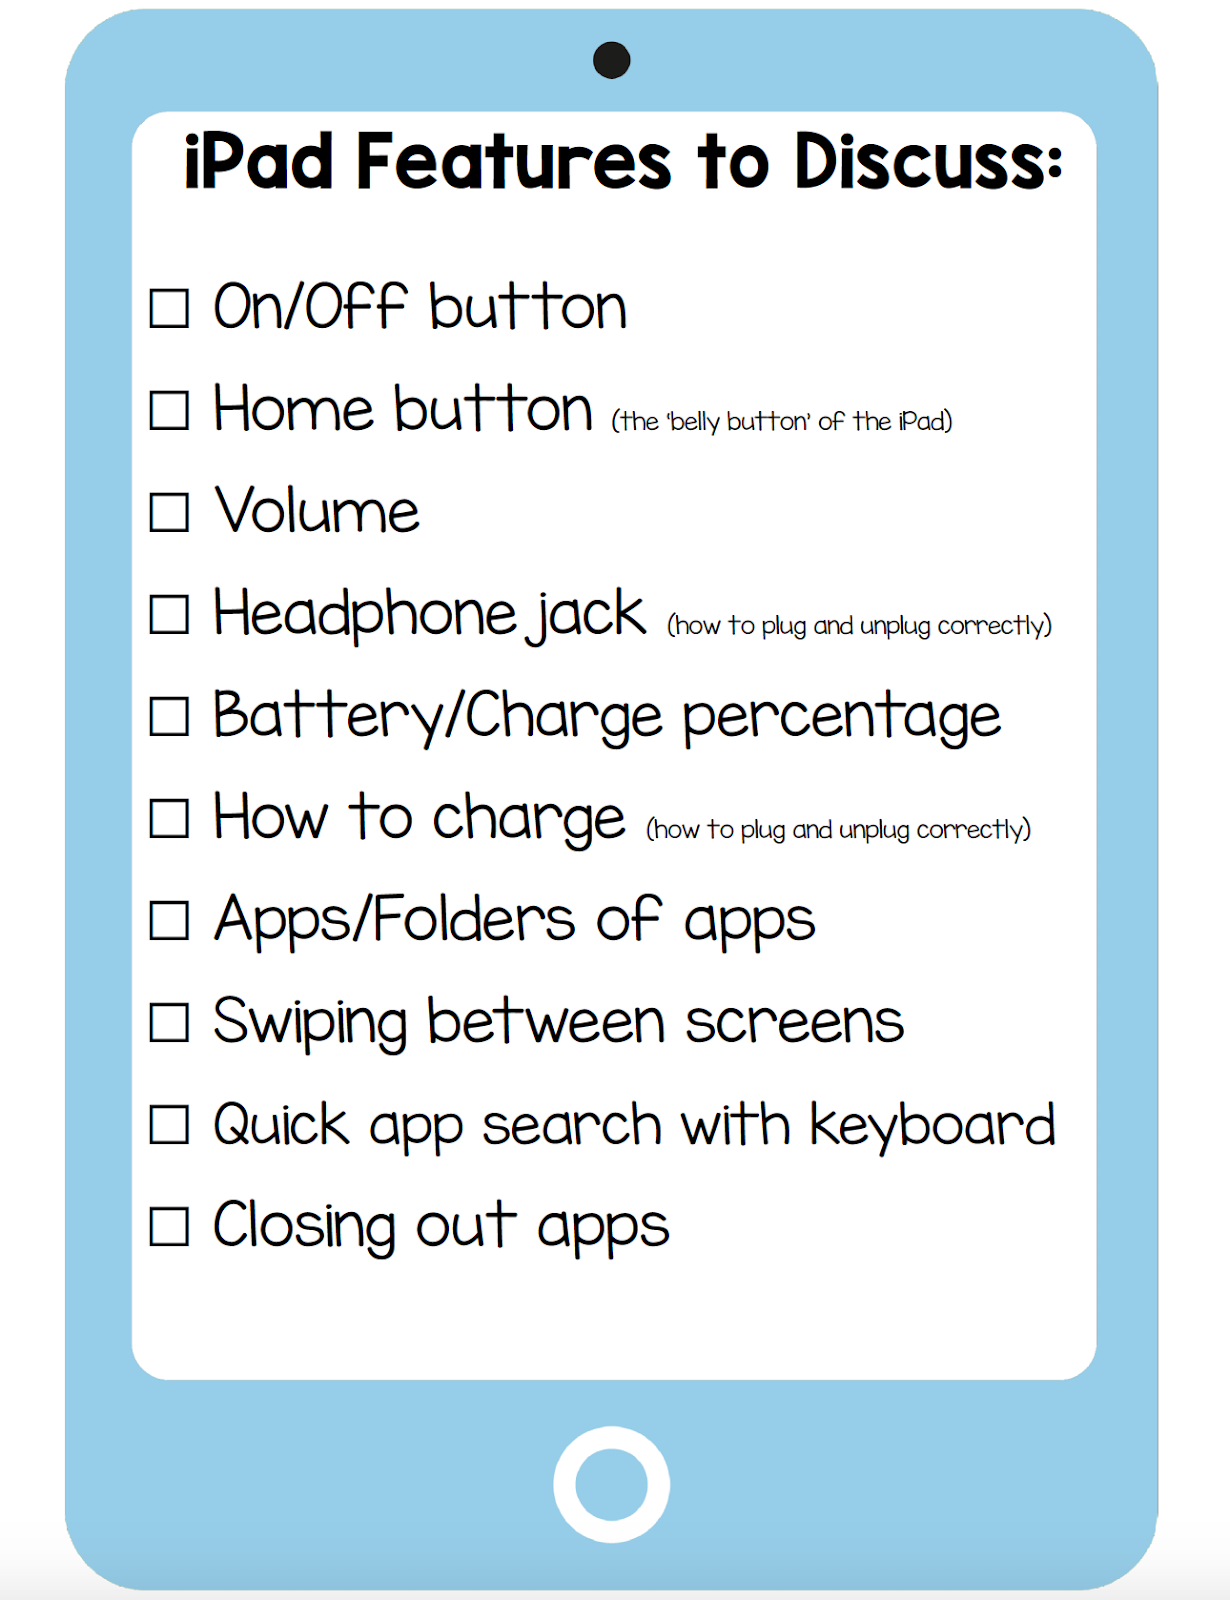 iPad features check list for iPromise iPad Poster Activity